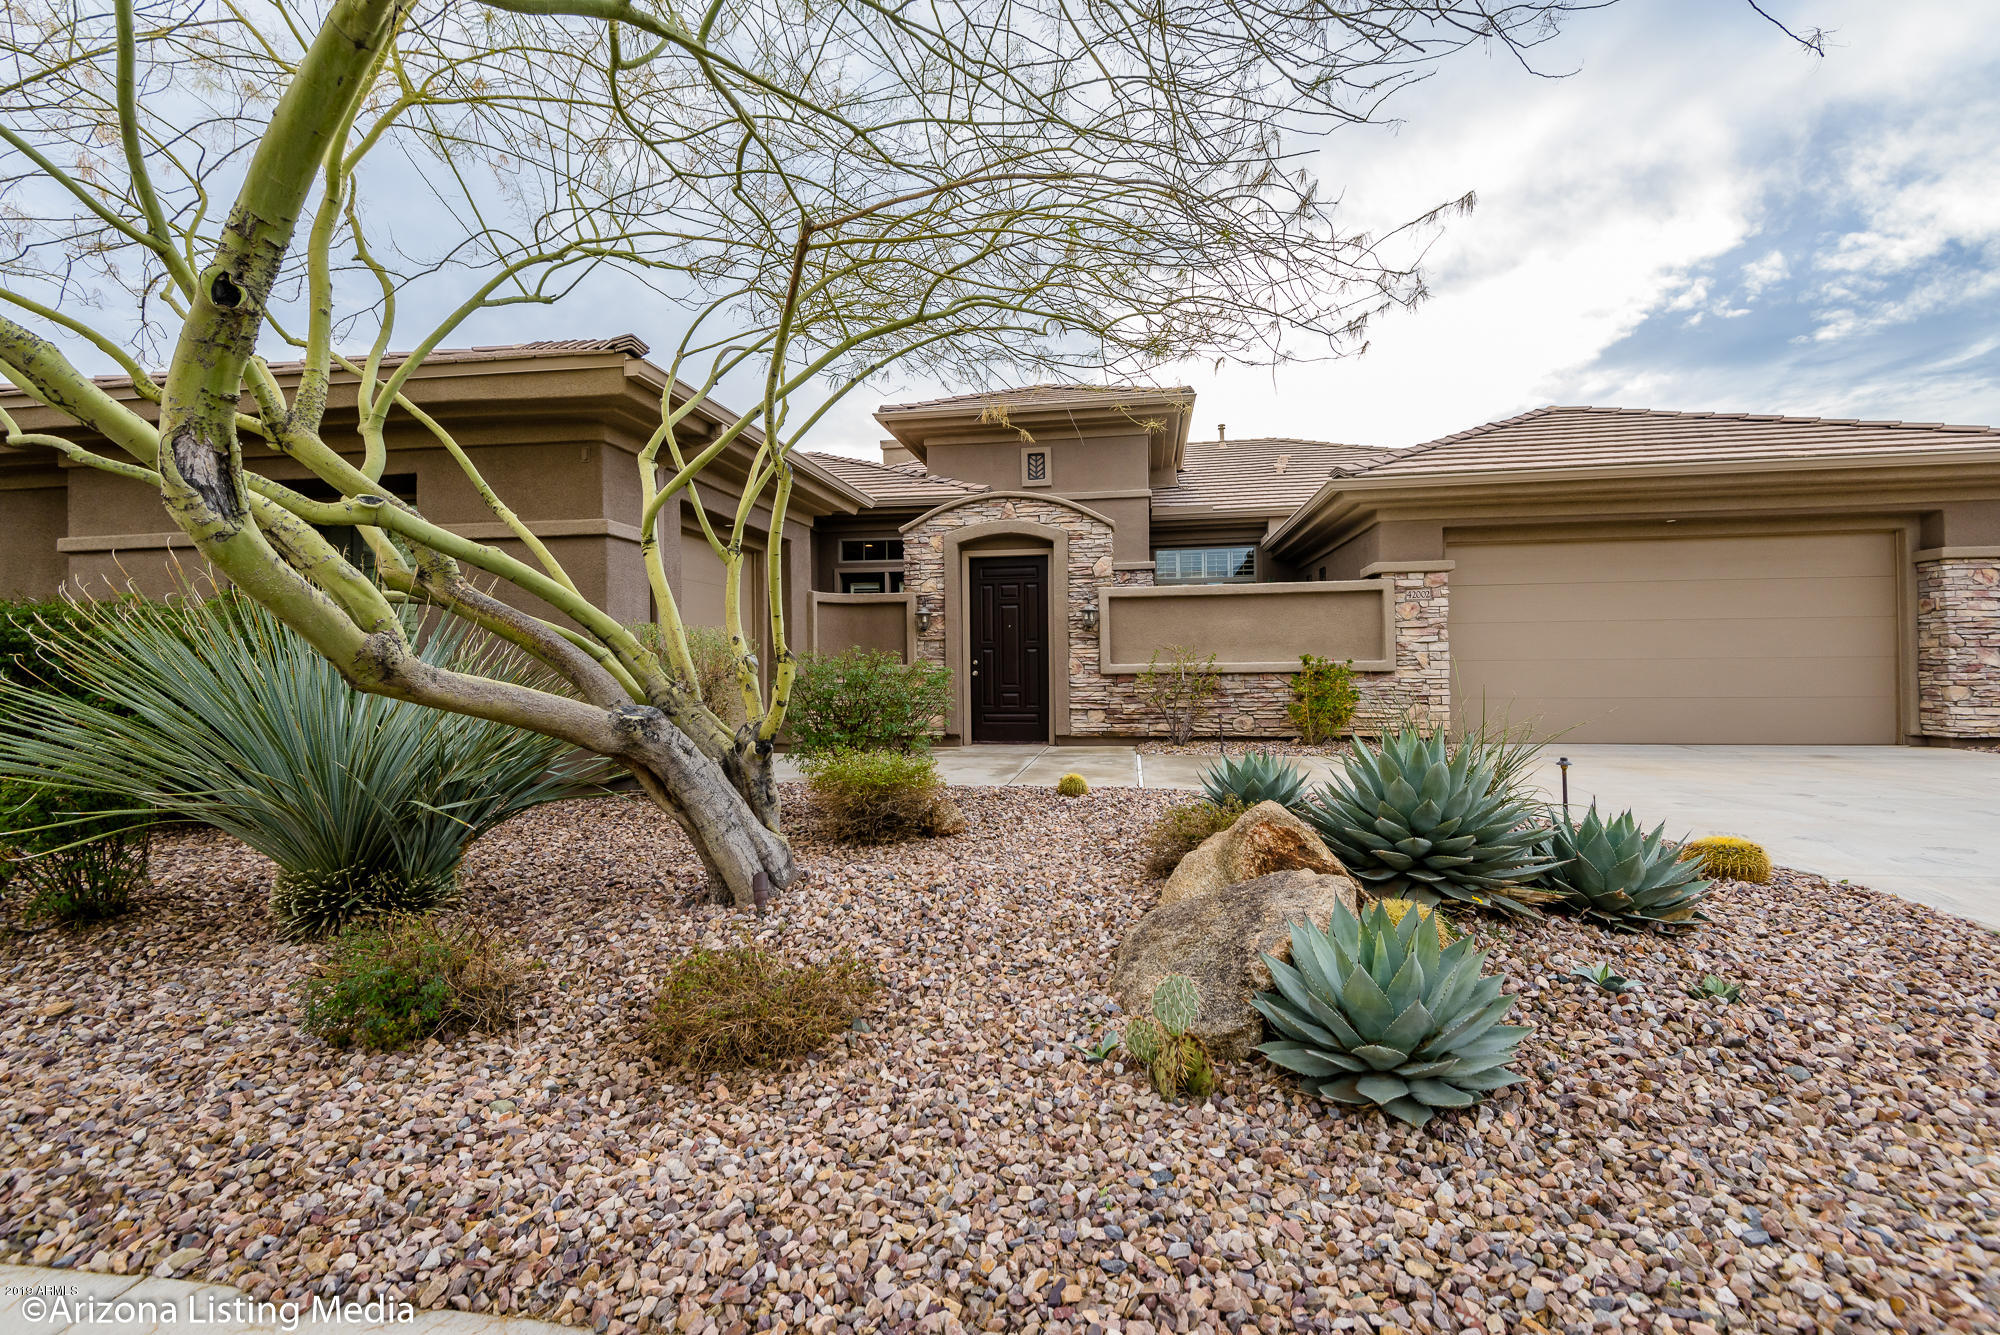 42002 N BRIDLEWOOD Way, Anthem in Maricopa County, AZ 85086 Home for Sale